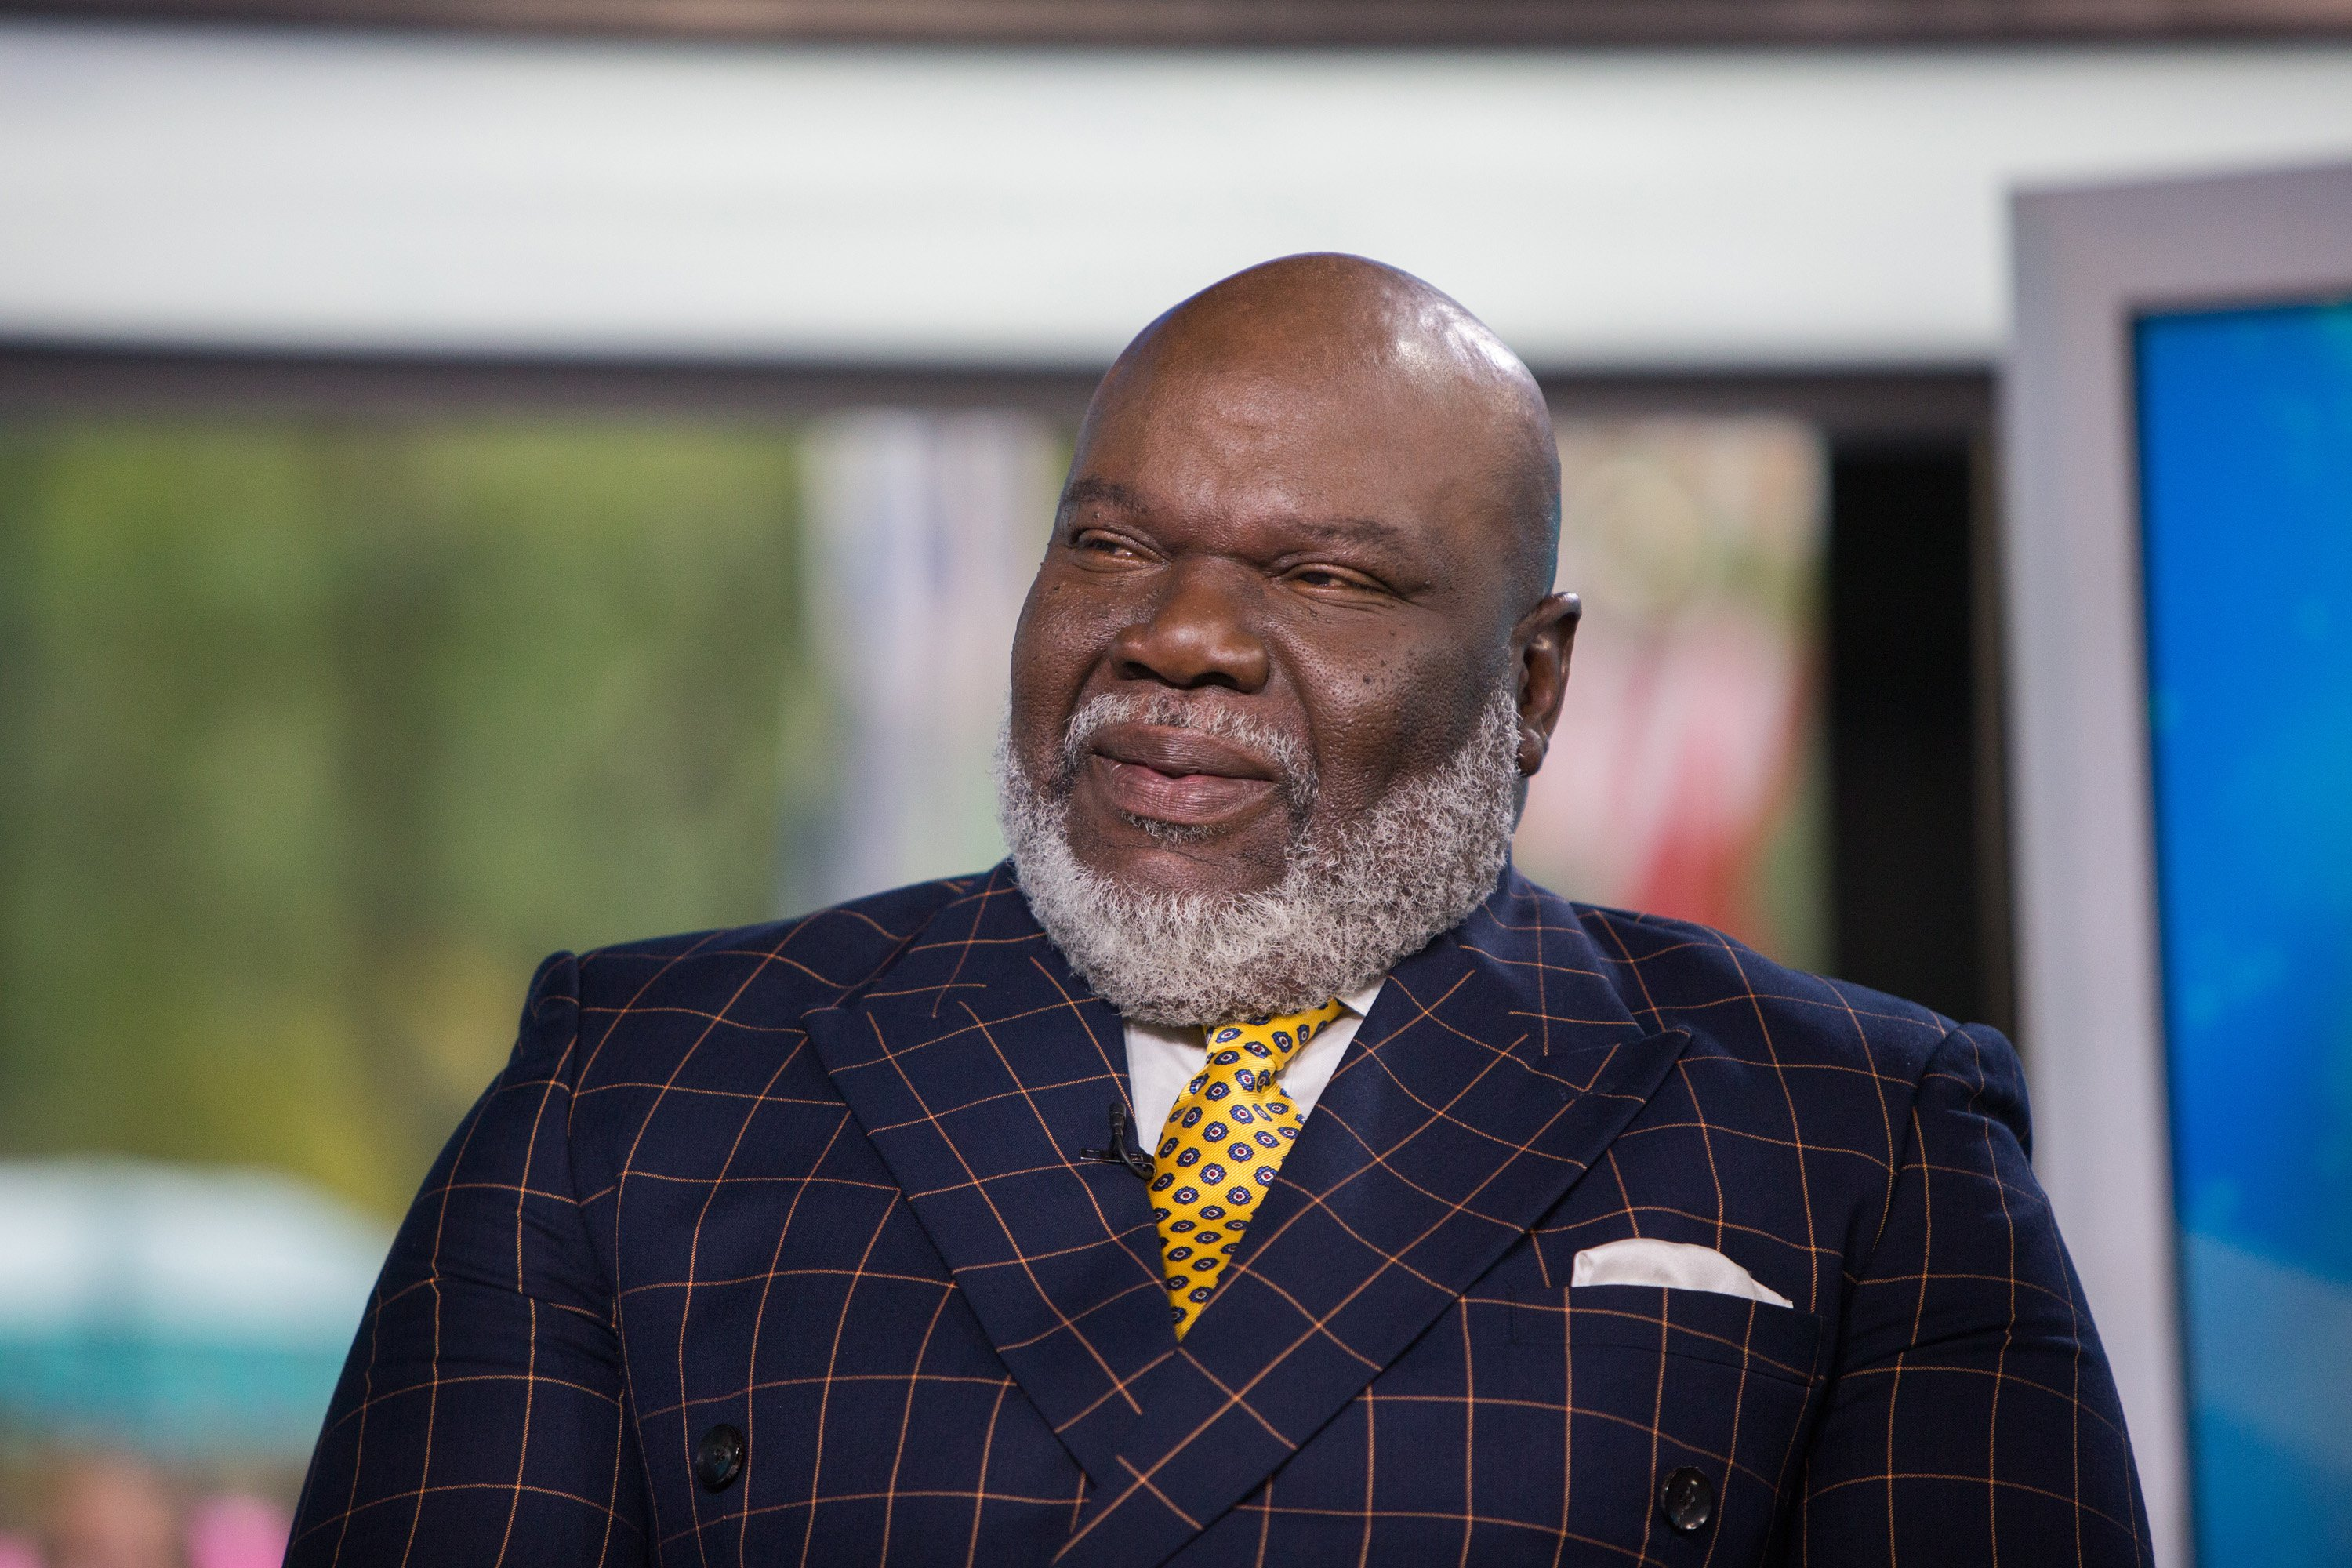 """Bishop T.D. Jakes on the set of """"Today"""" on Monday, October 9, 2017.   Photo: Getty Images"""